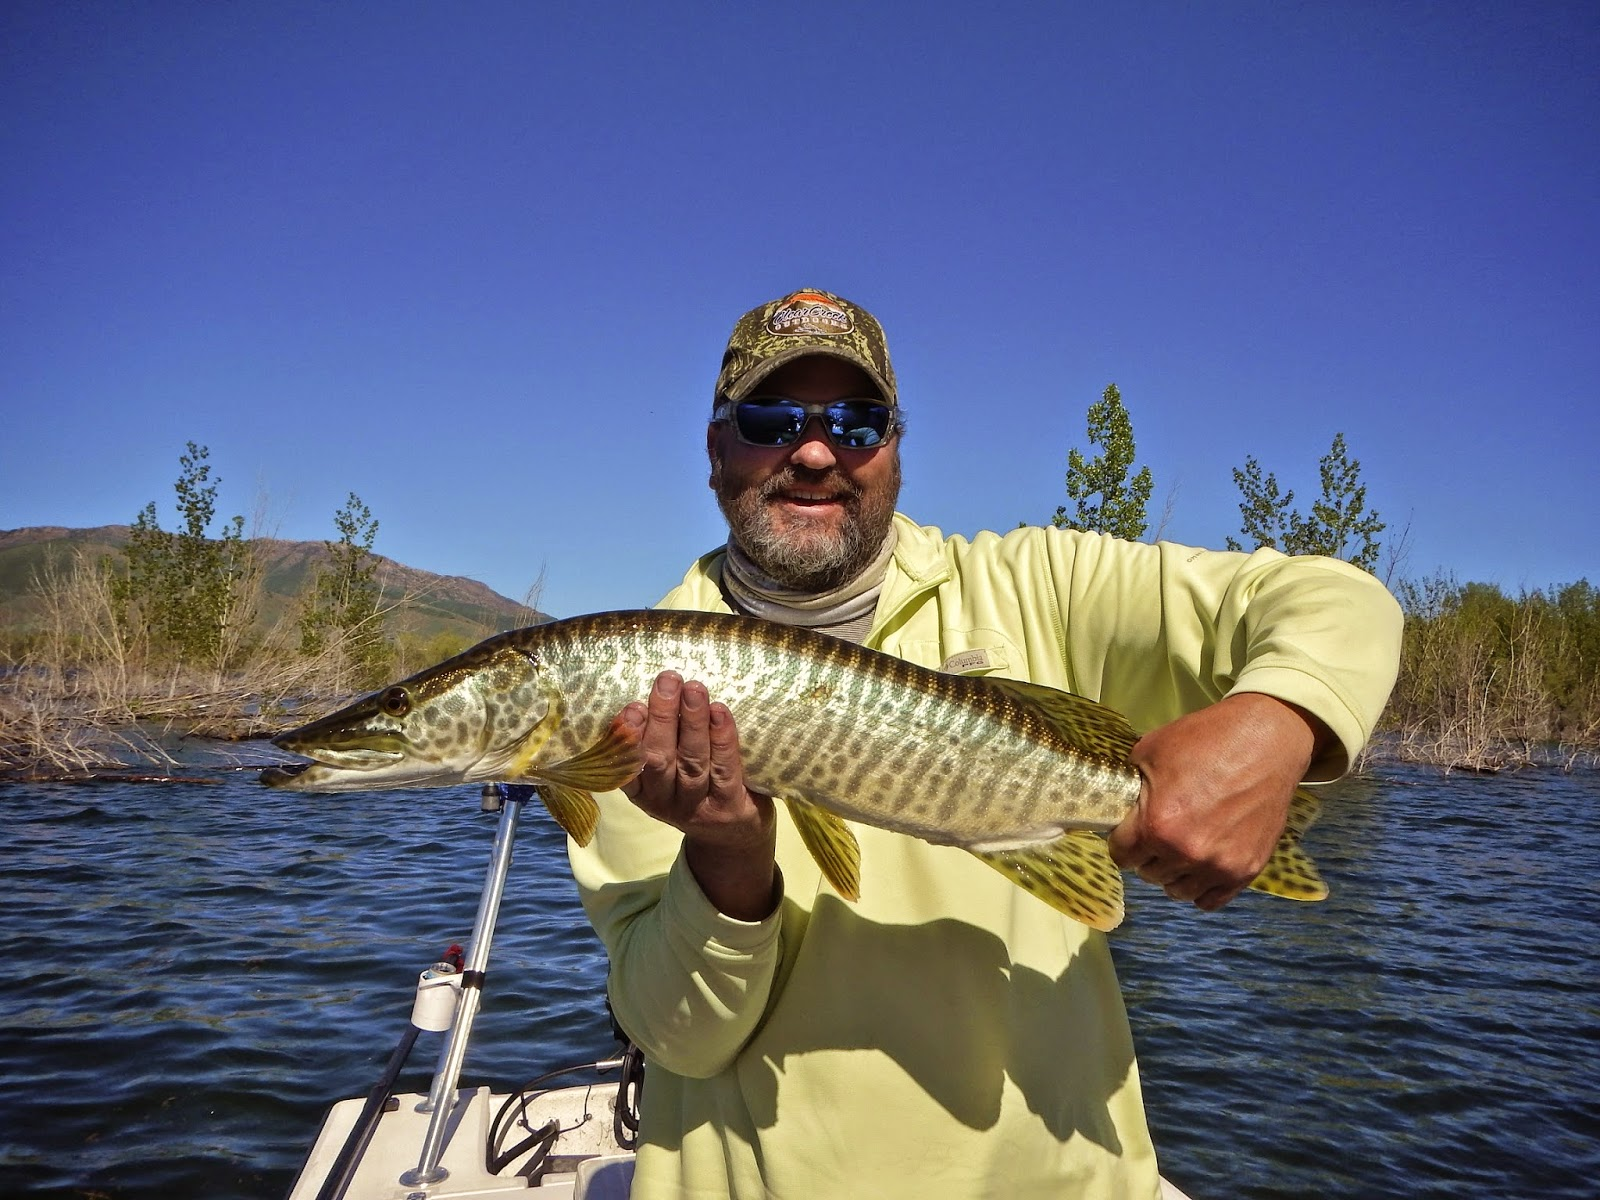 Colorado fly fishing blog tiger muskie for Tiger muskie fishing